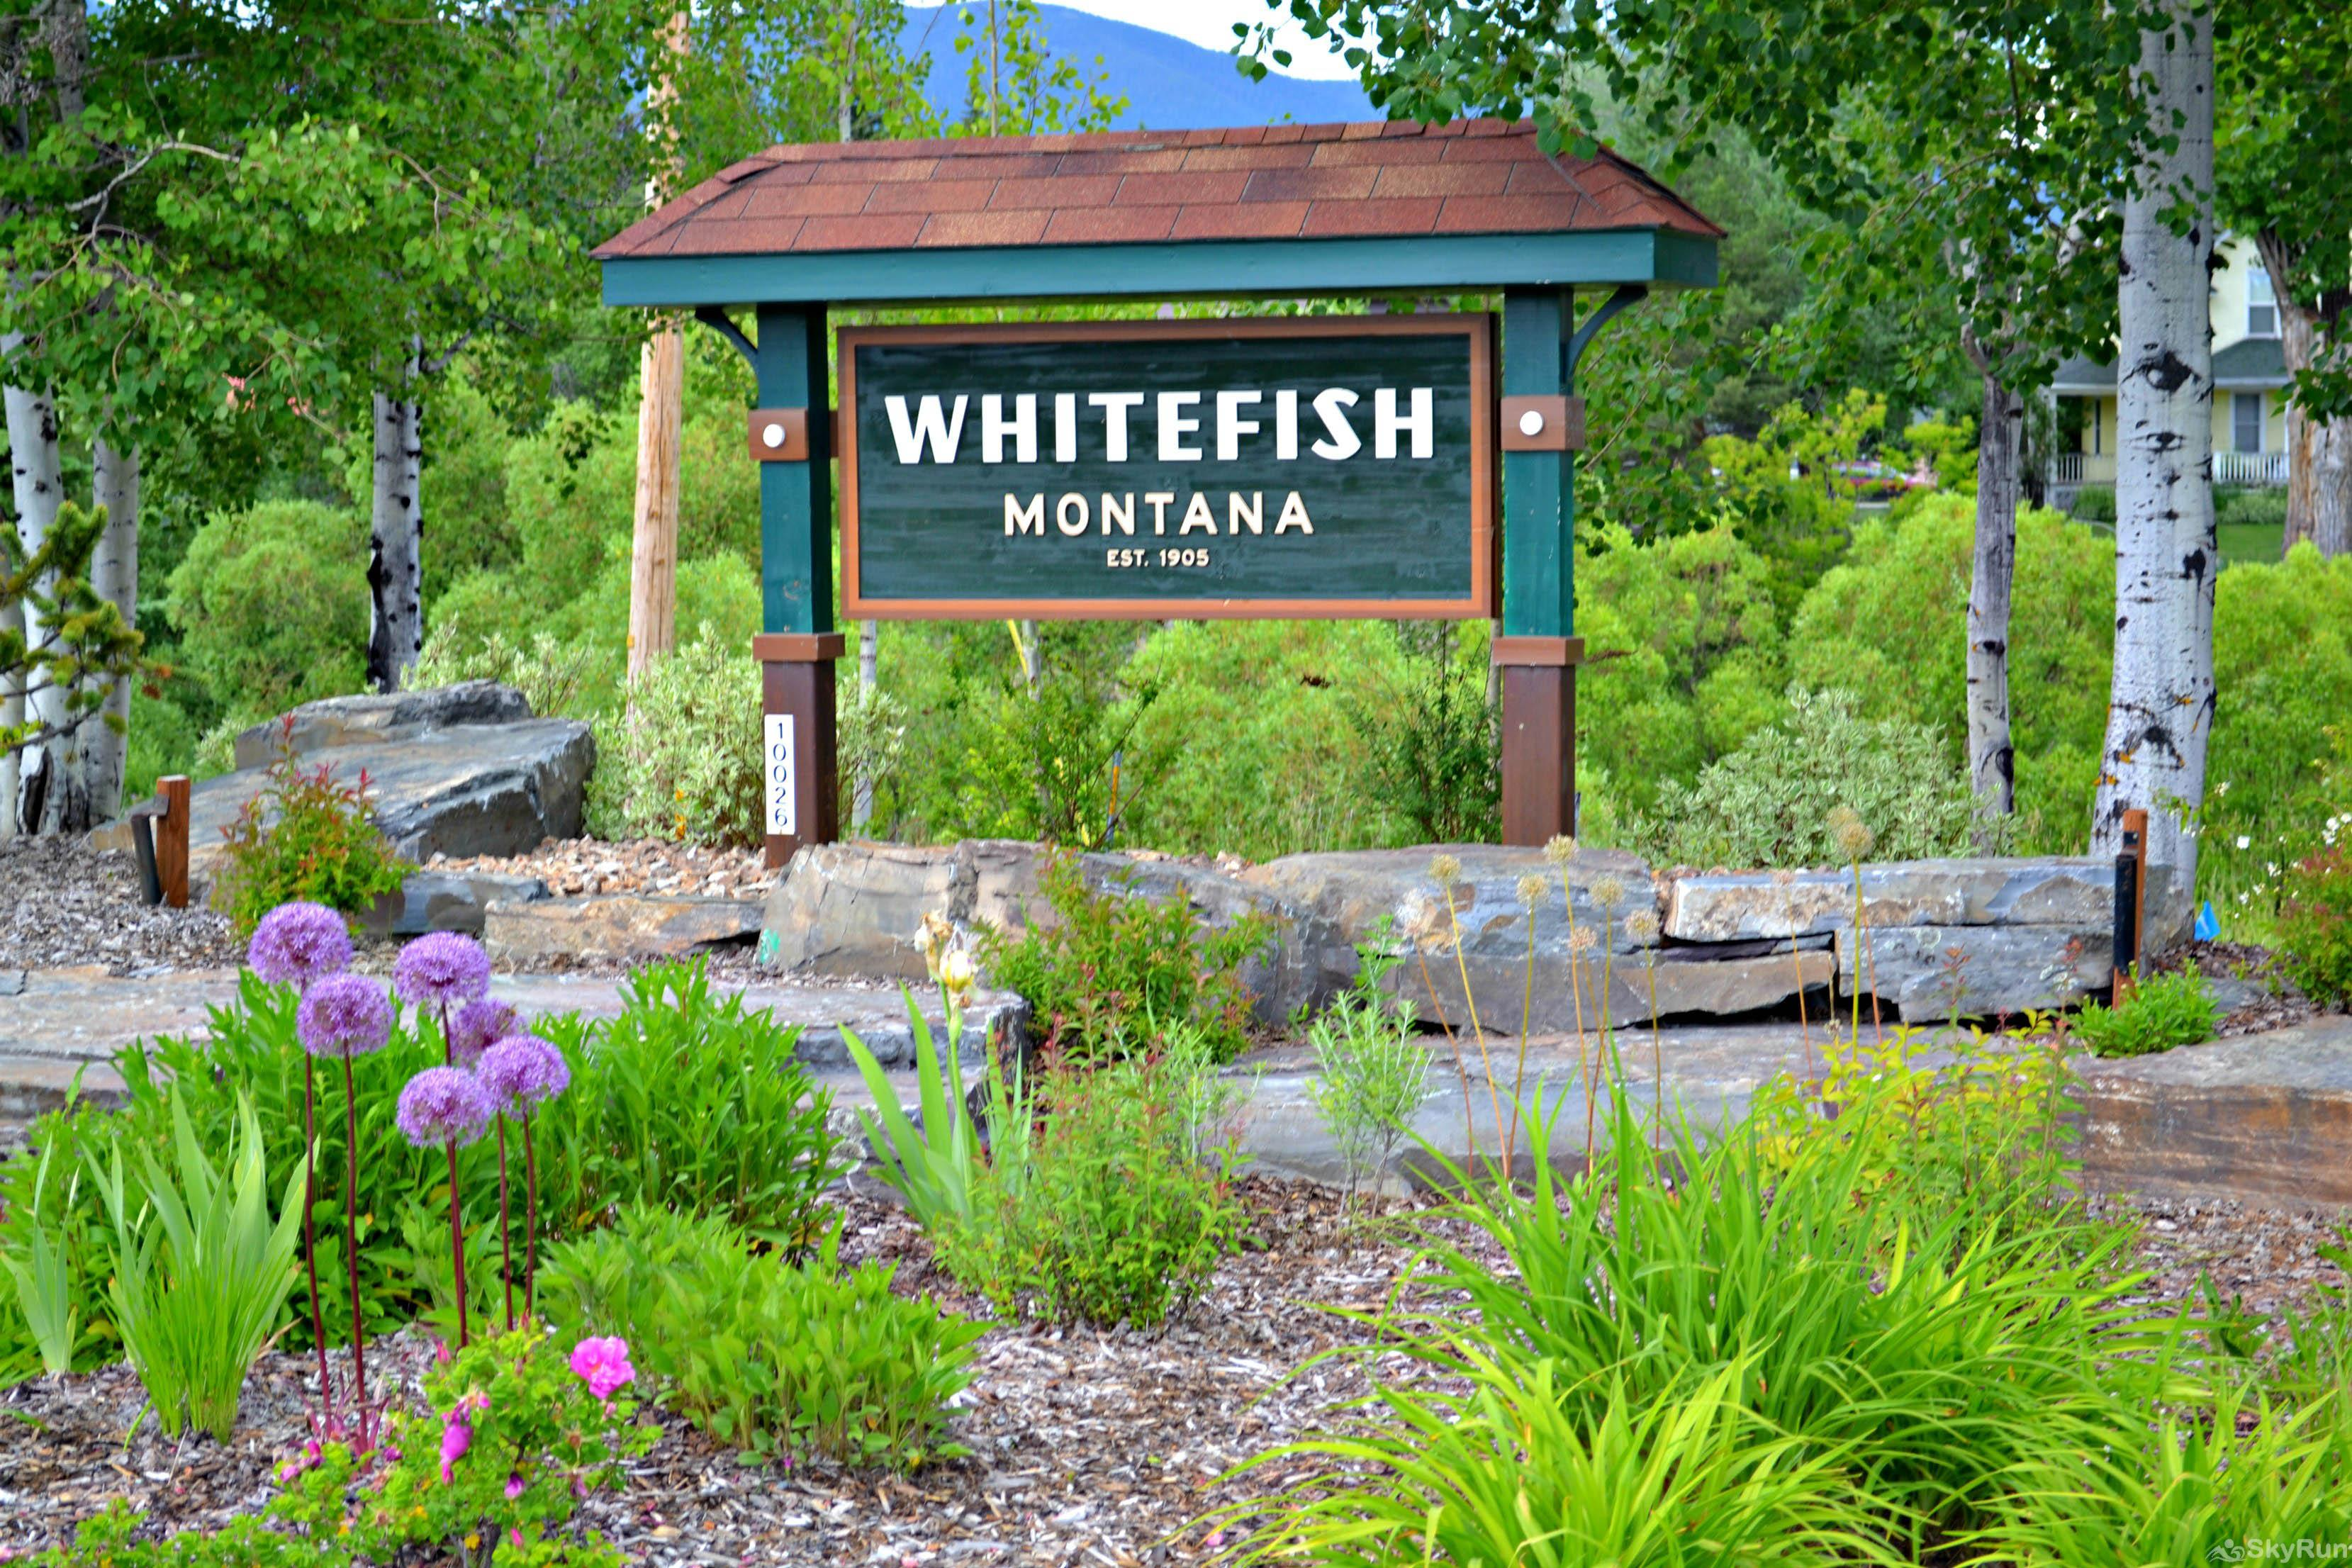 Stillwater Mountain Lodge Welcome to Whitefish